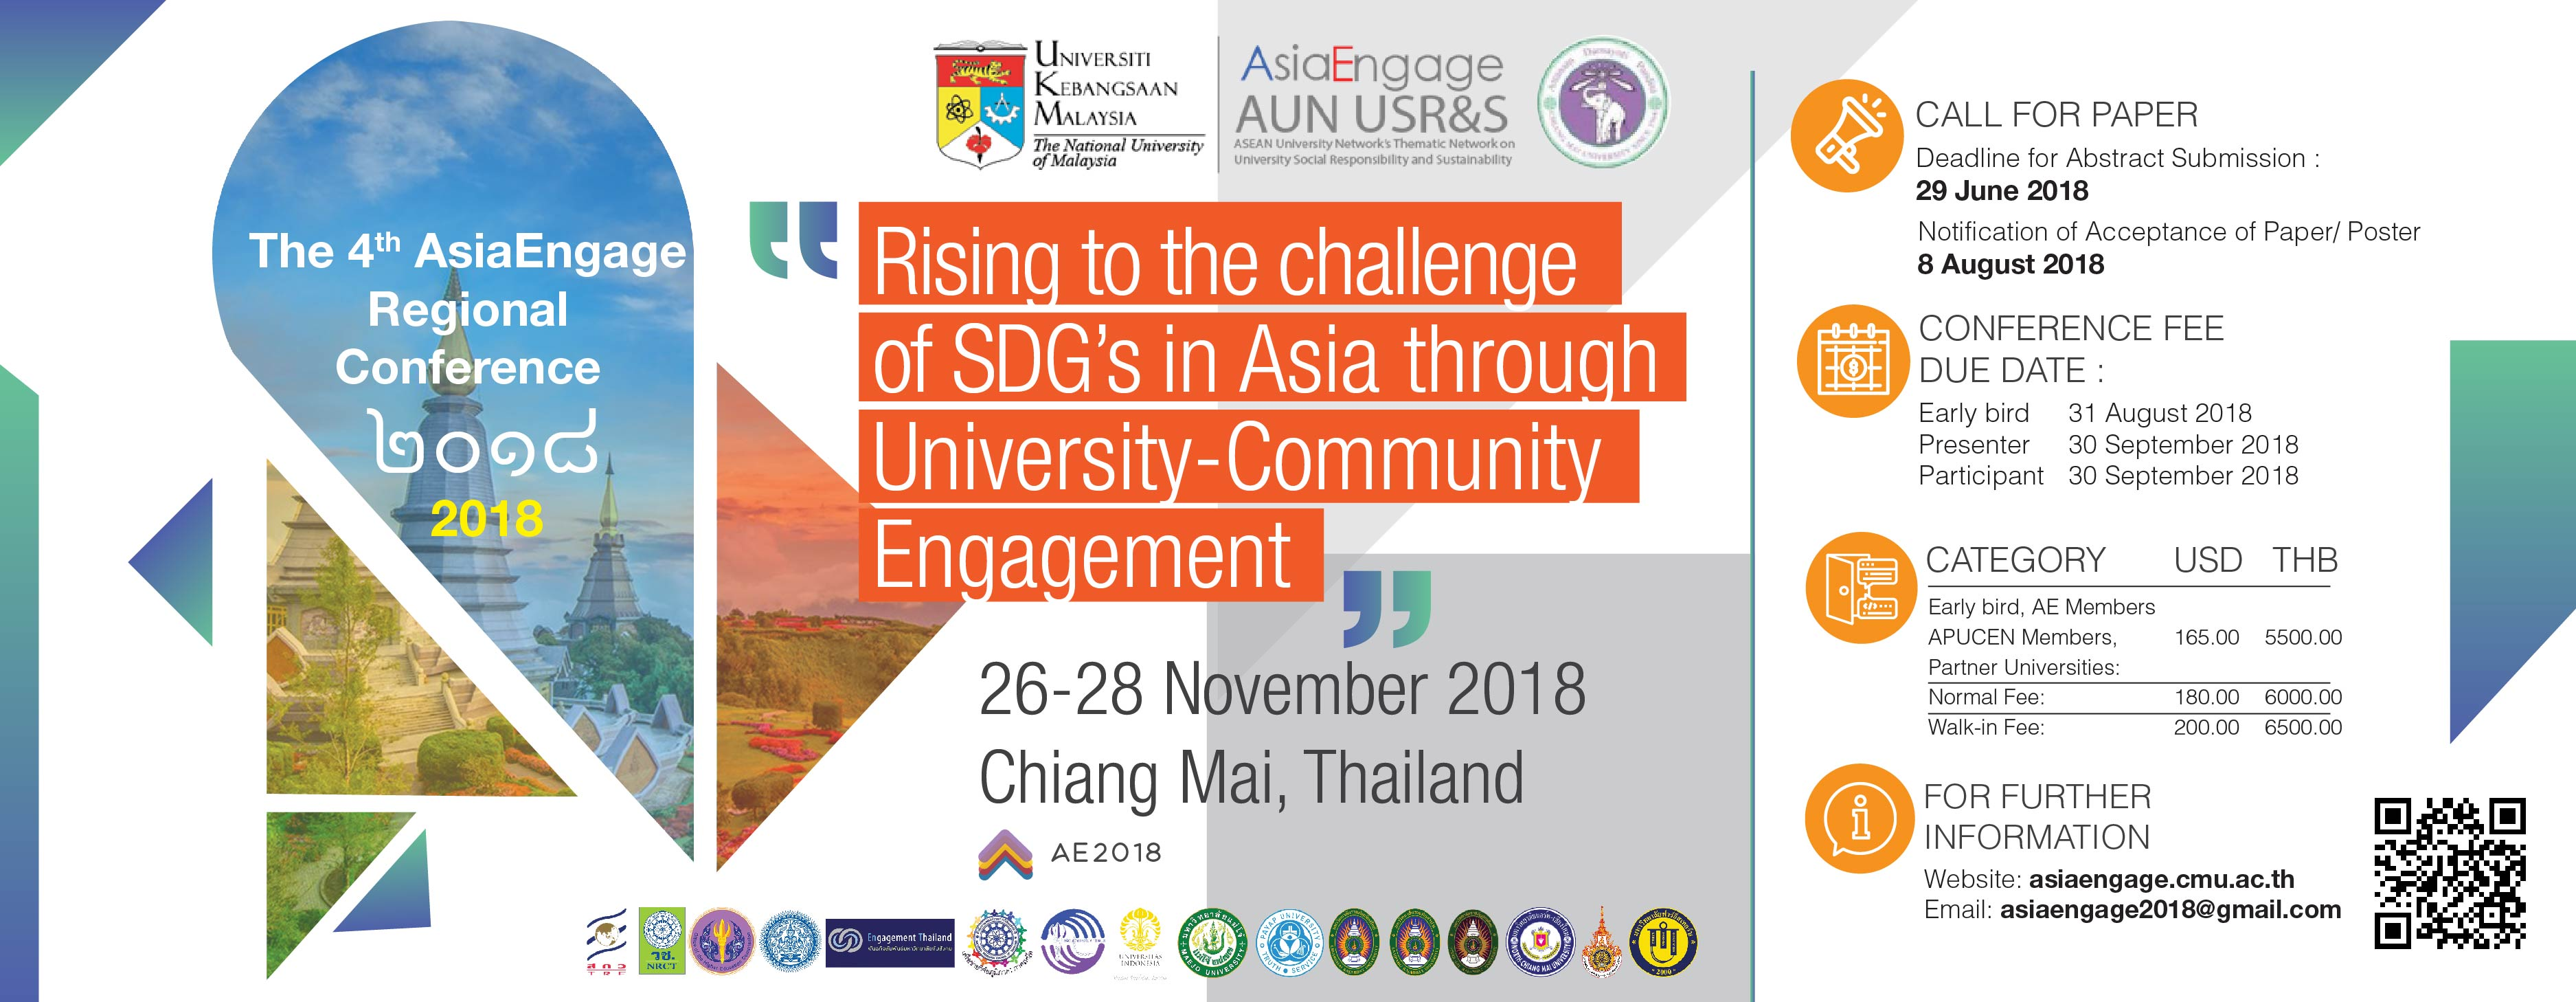 Call for Paper: The 4th AsiaEngage Regional Conference 2018